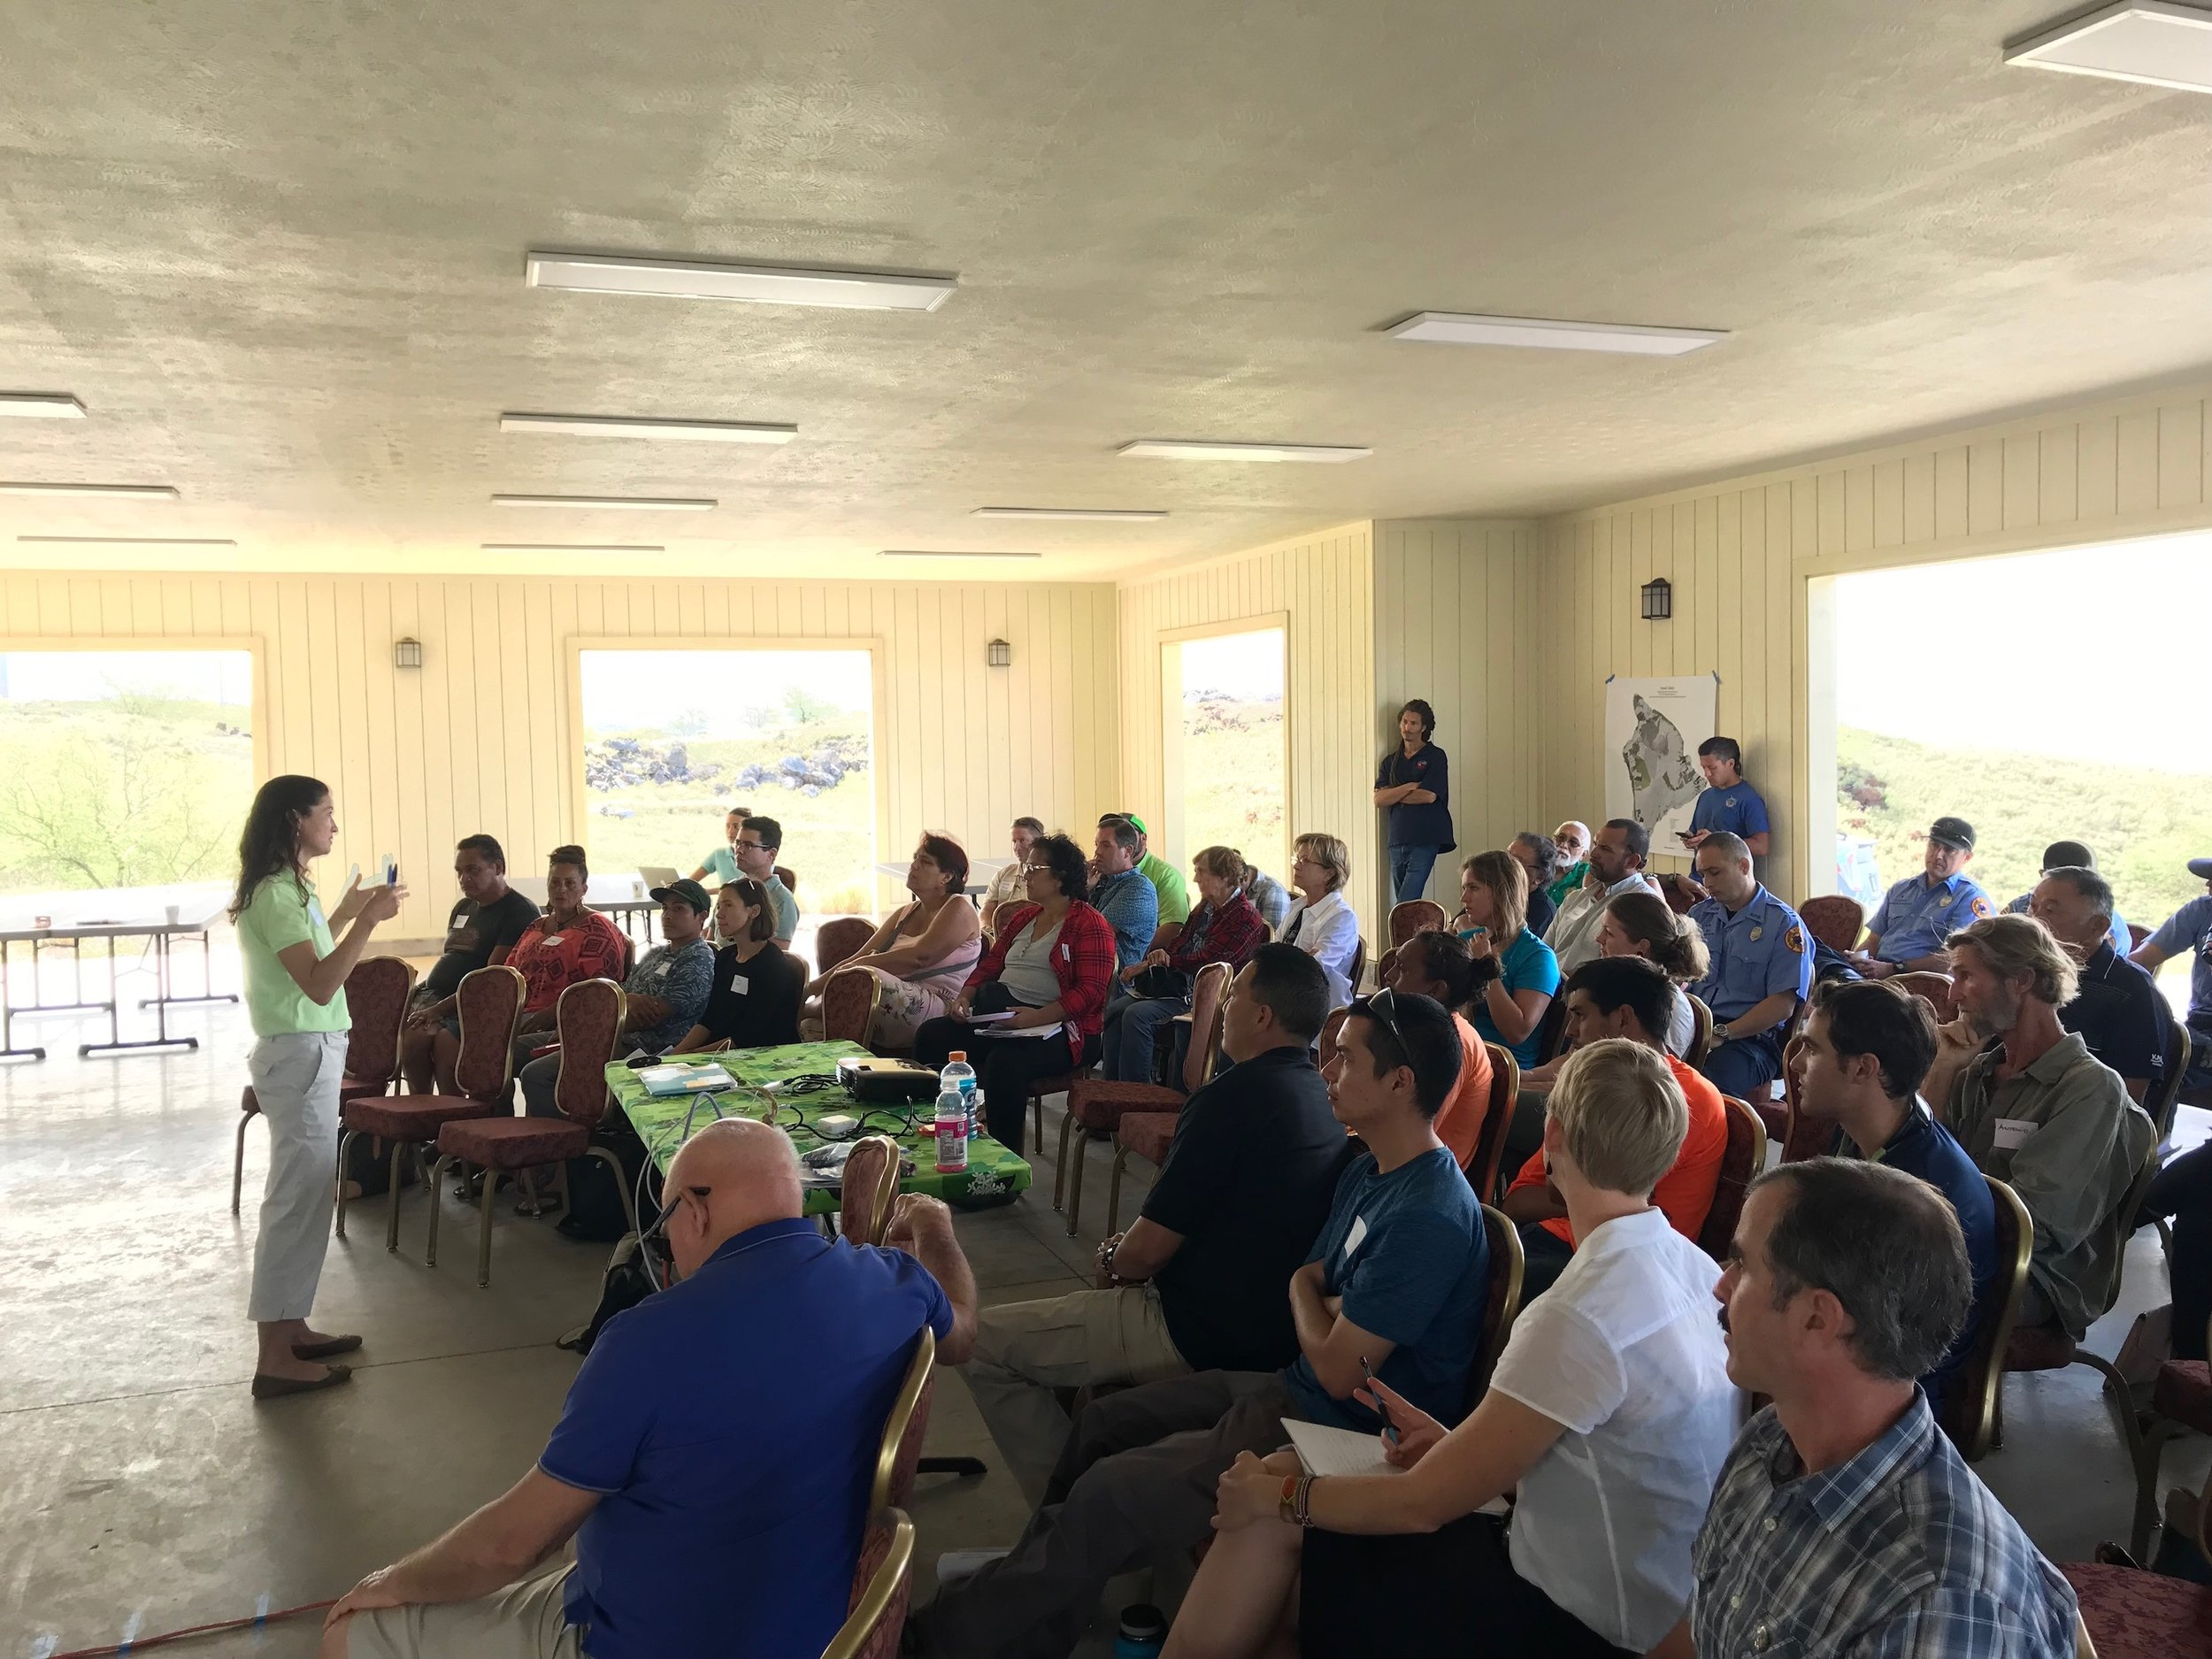 Hawaii Island Kailapa Vegetative Fuels Management Collaborative Action Planning Workshop_2_26_2019_56.jpg